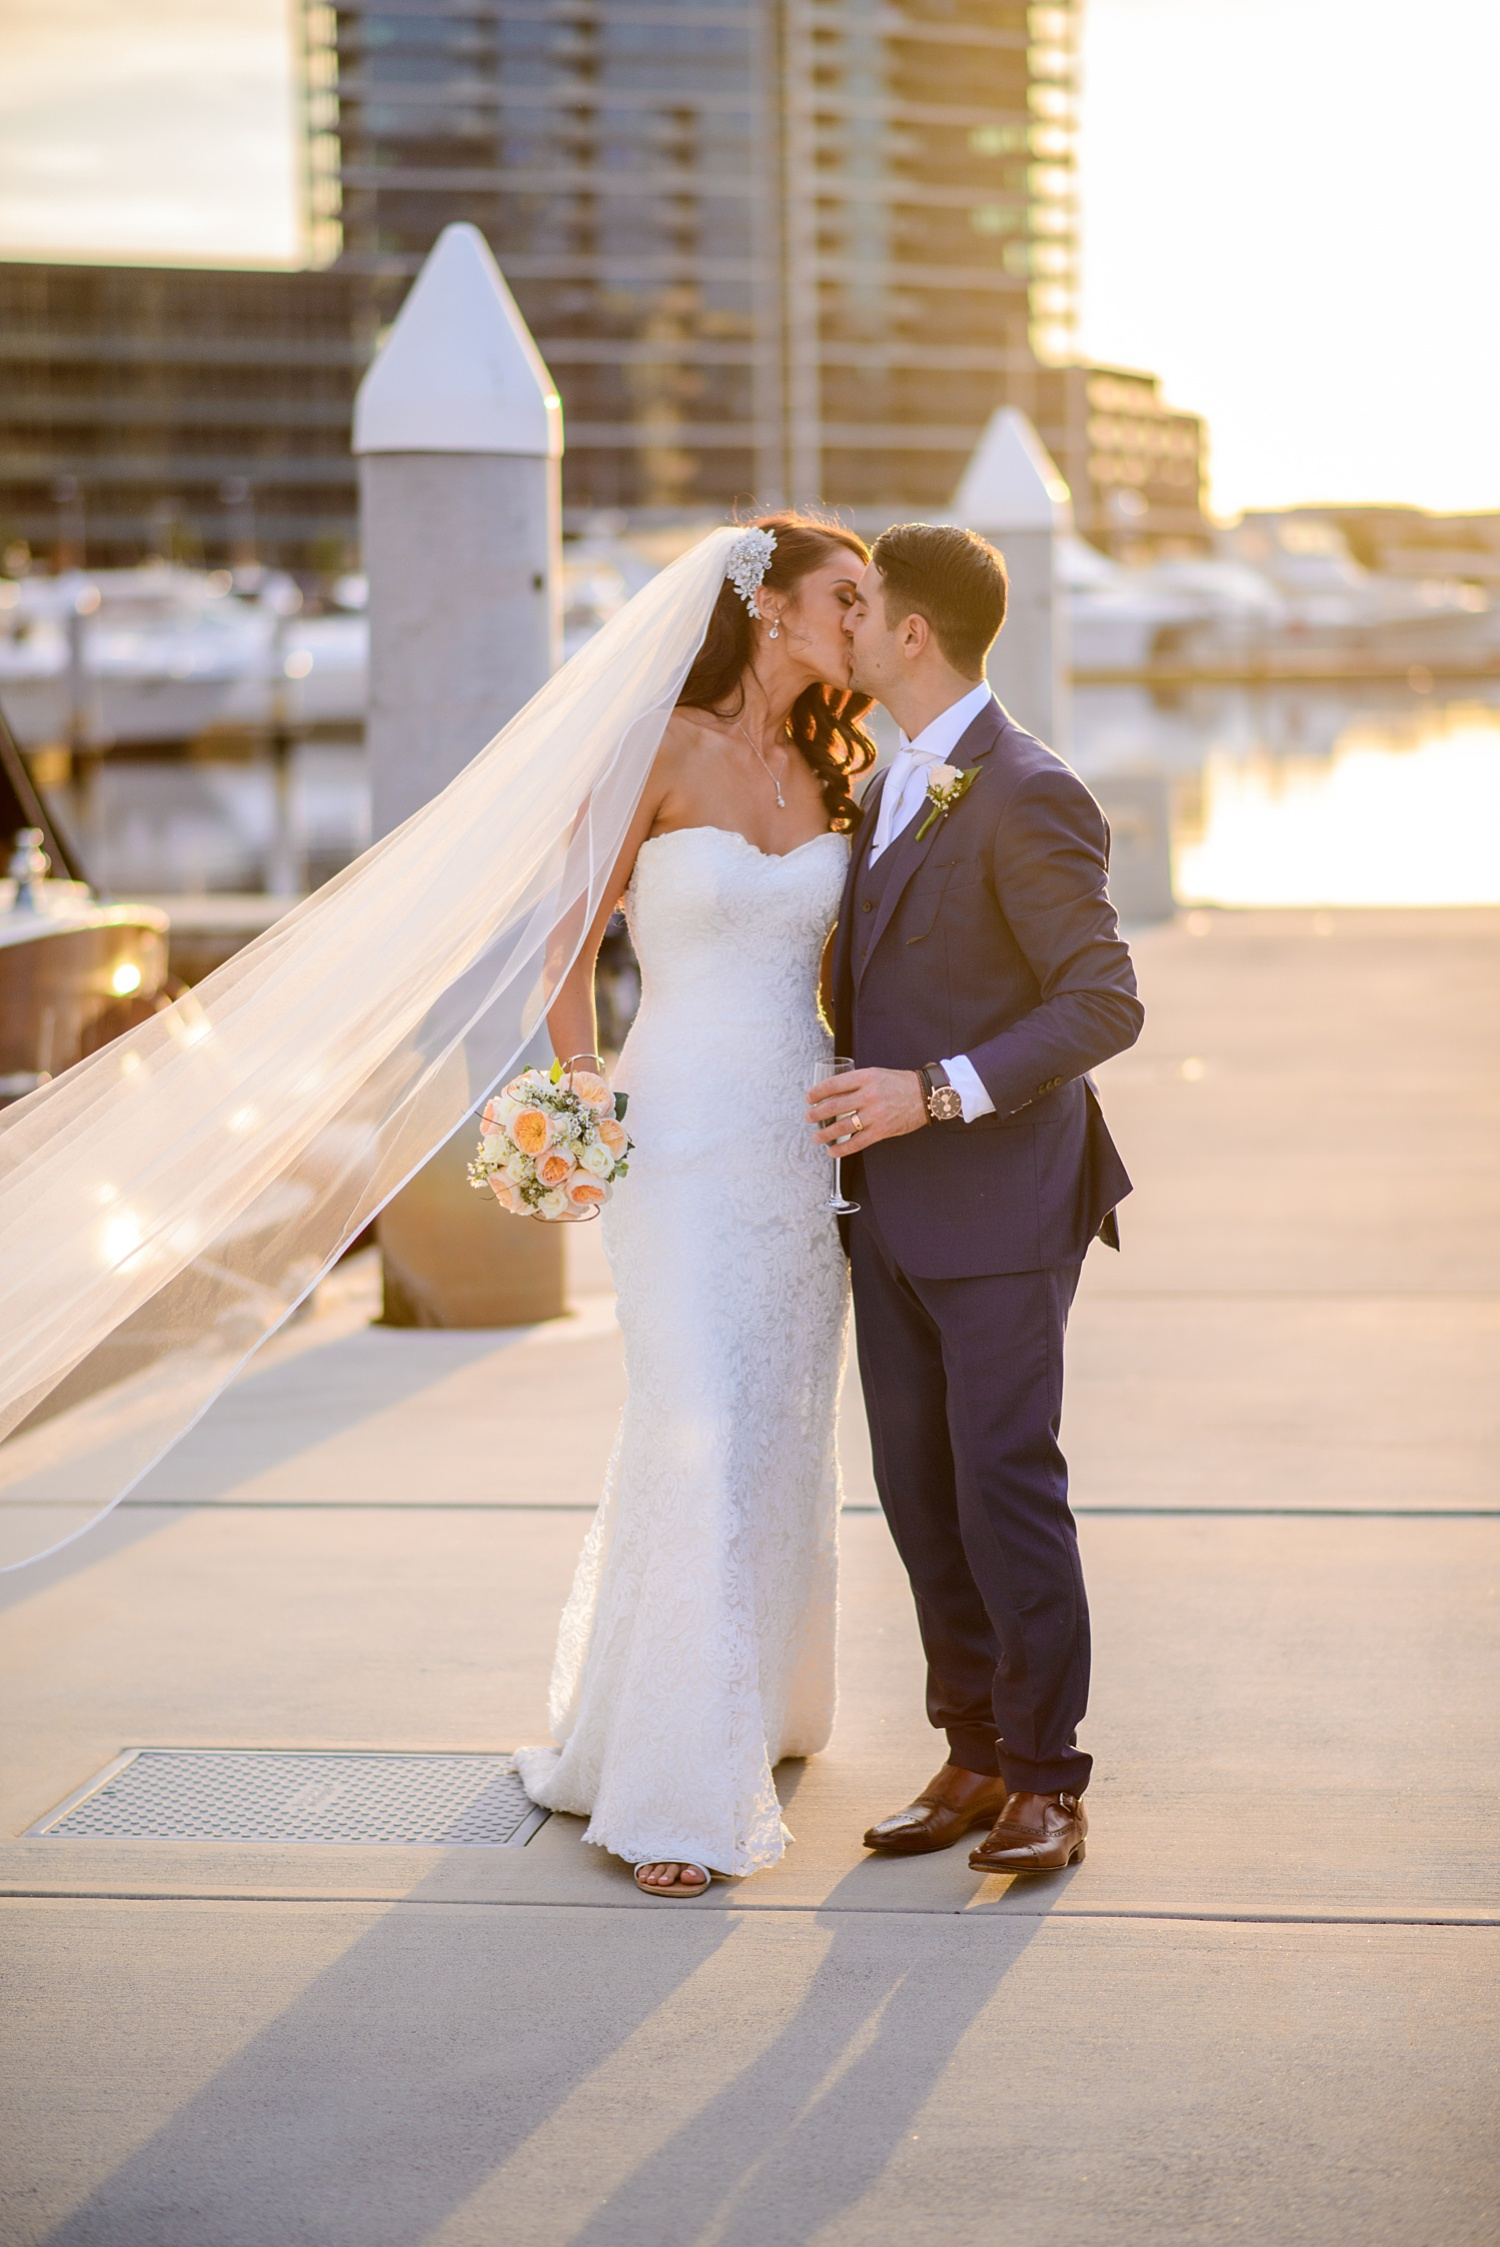 Greg Smit Photography Nashville Melbourne Destination wedding photographer_0005